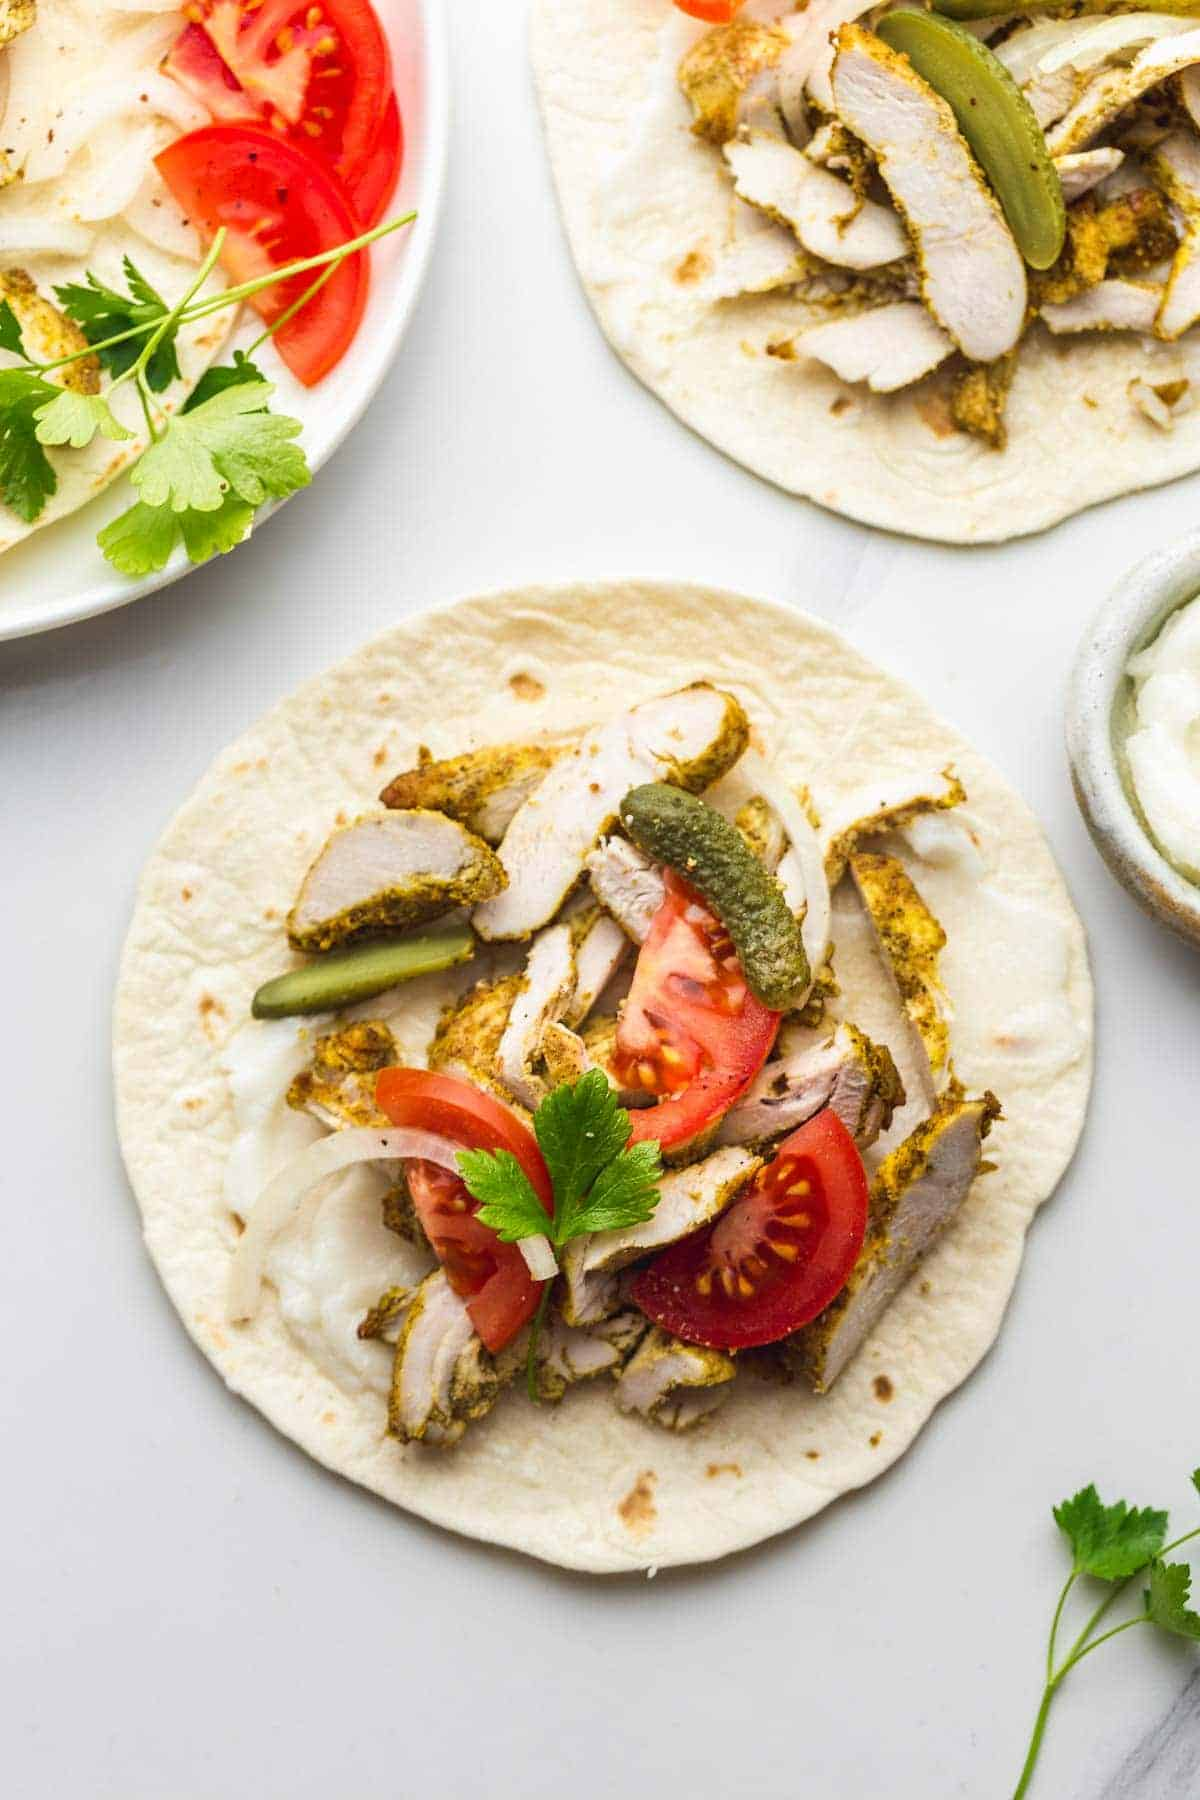 Chicken shawarma wraps or tacos with fresh tomato, pickles, and white onion slices